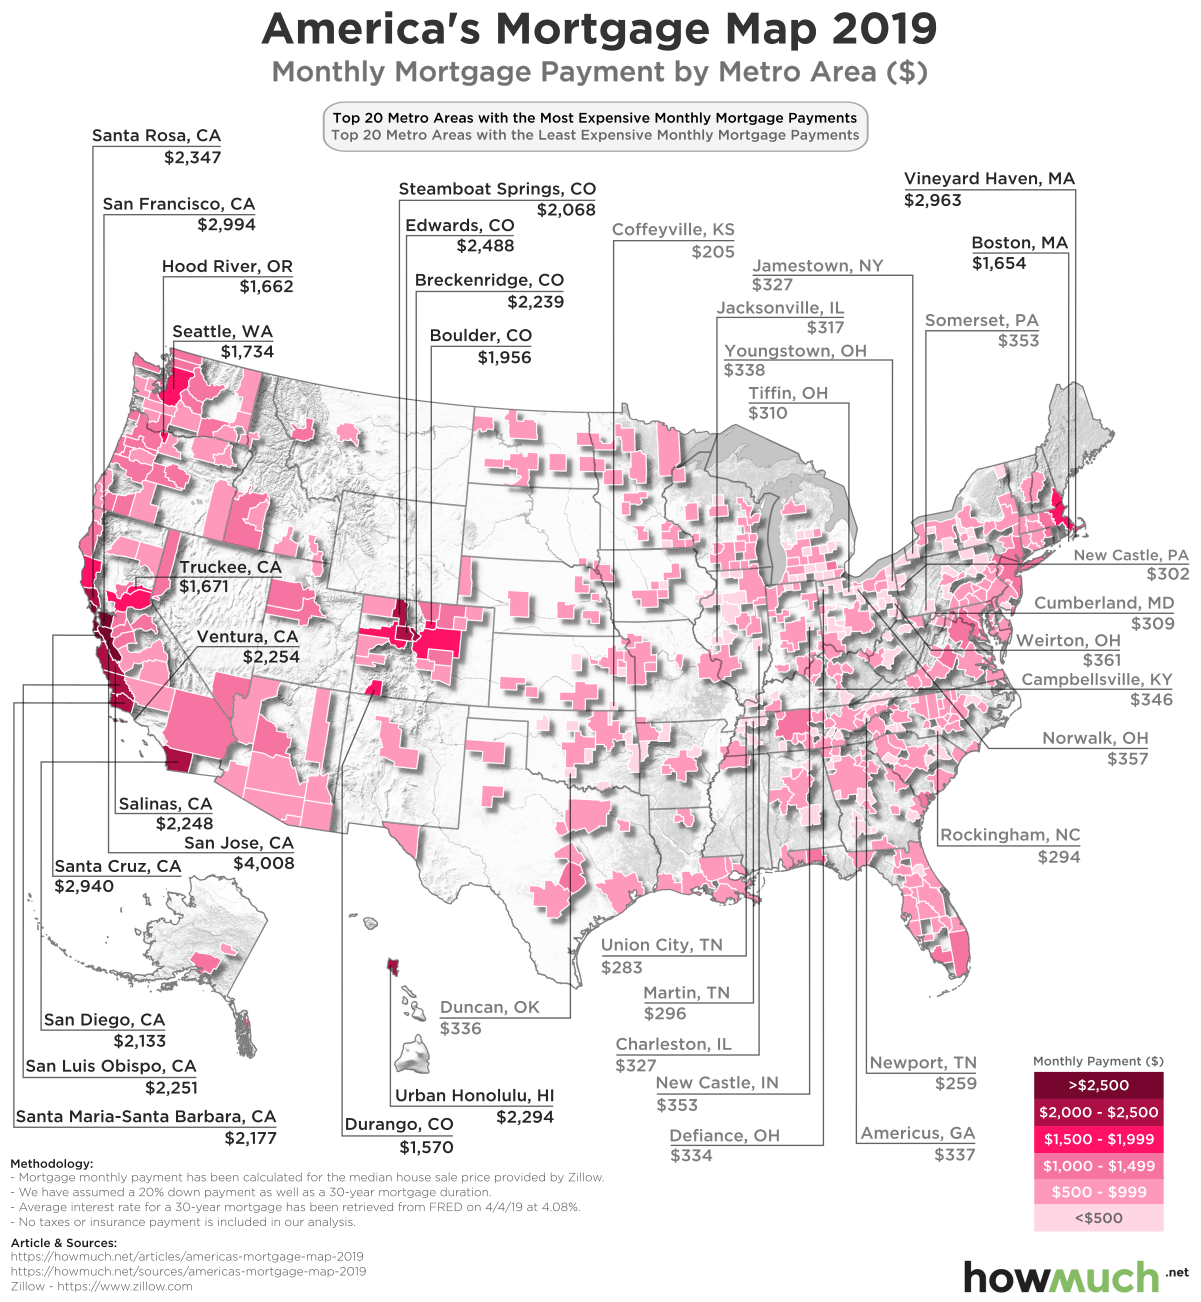 What Is The Map Of The United States.Visualizing Monthly Mortgage Payments In The United States